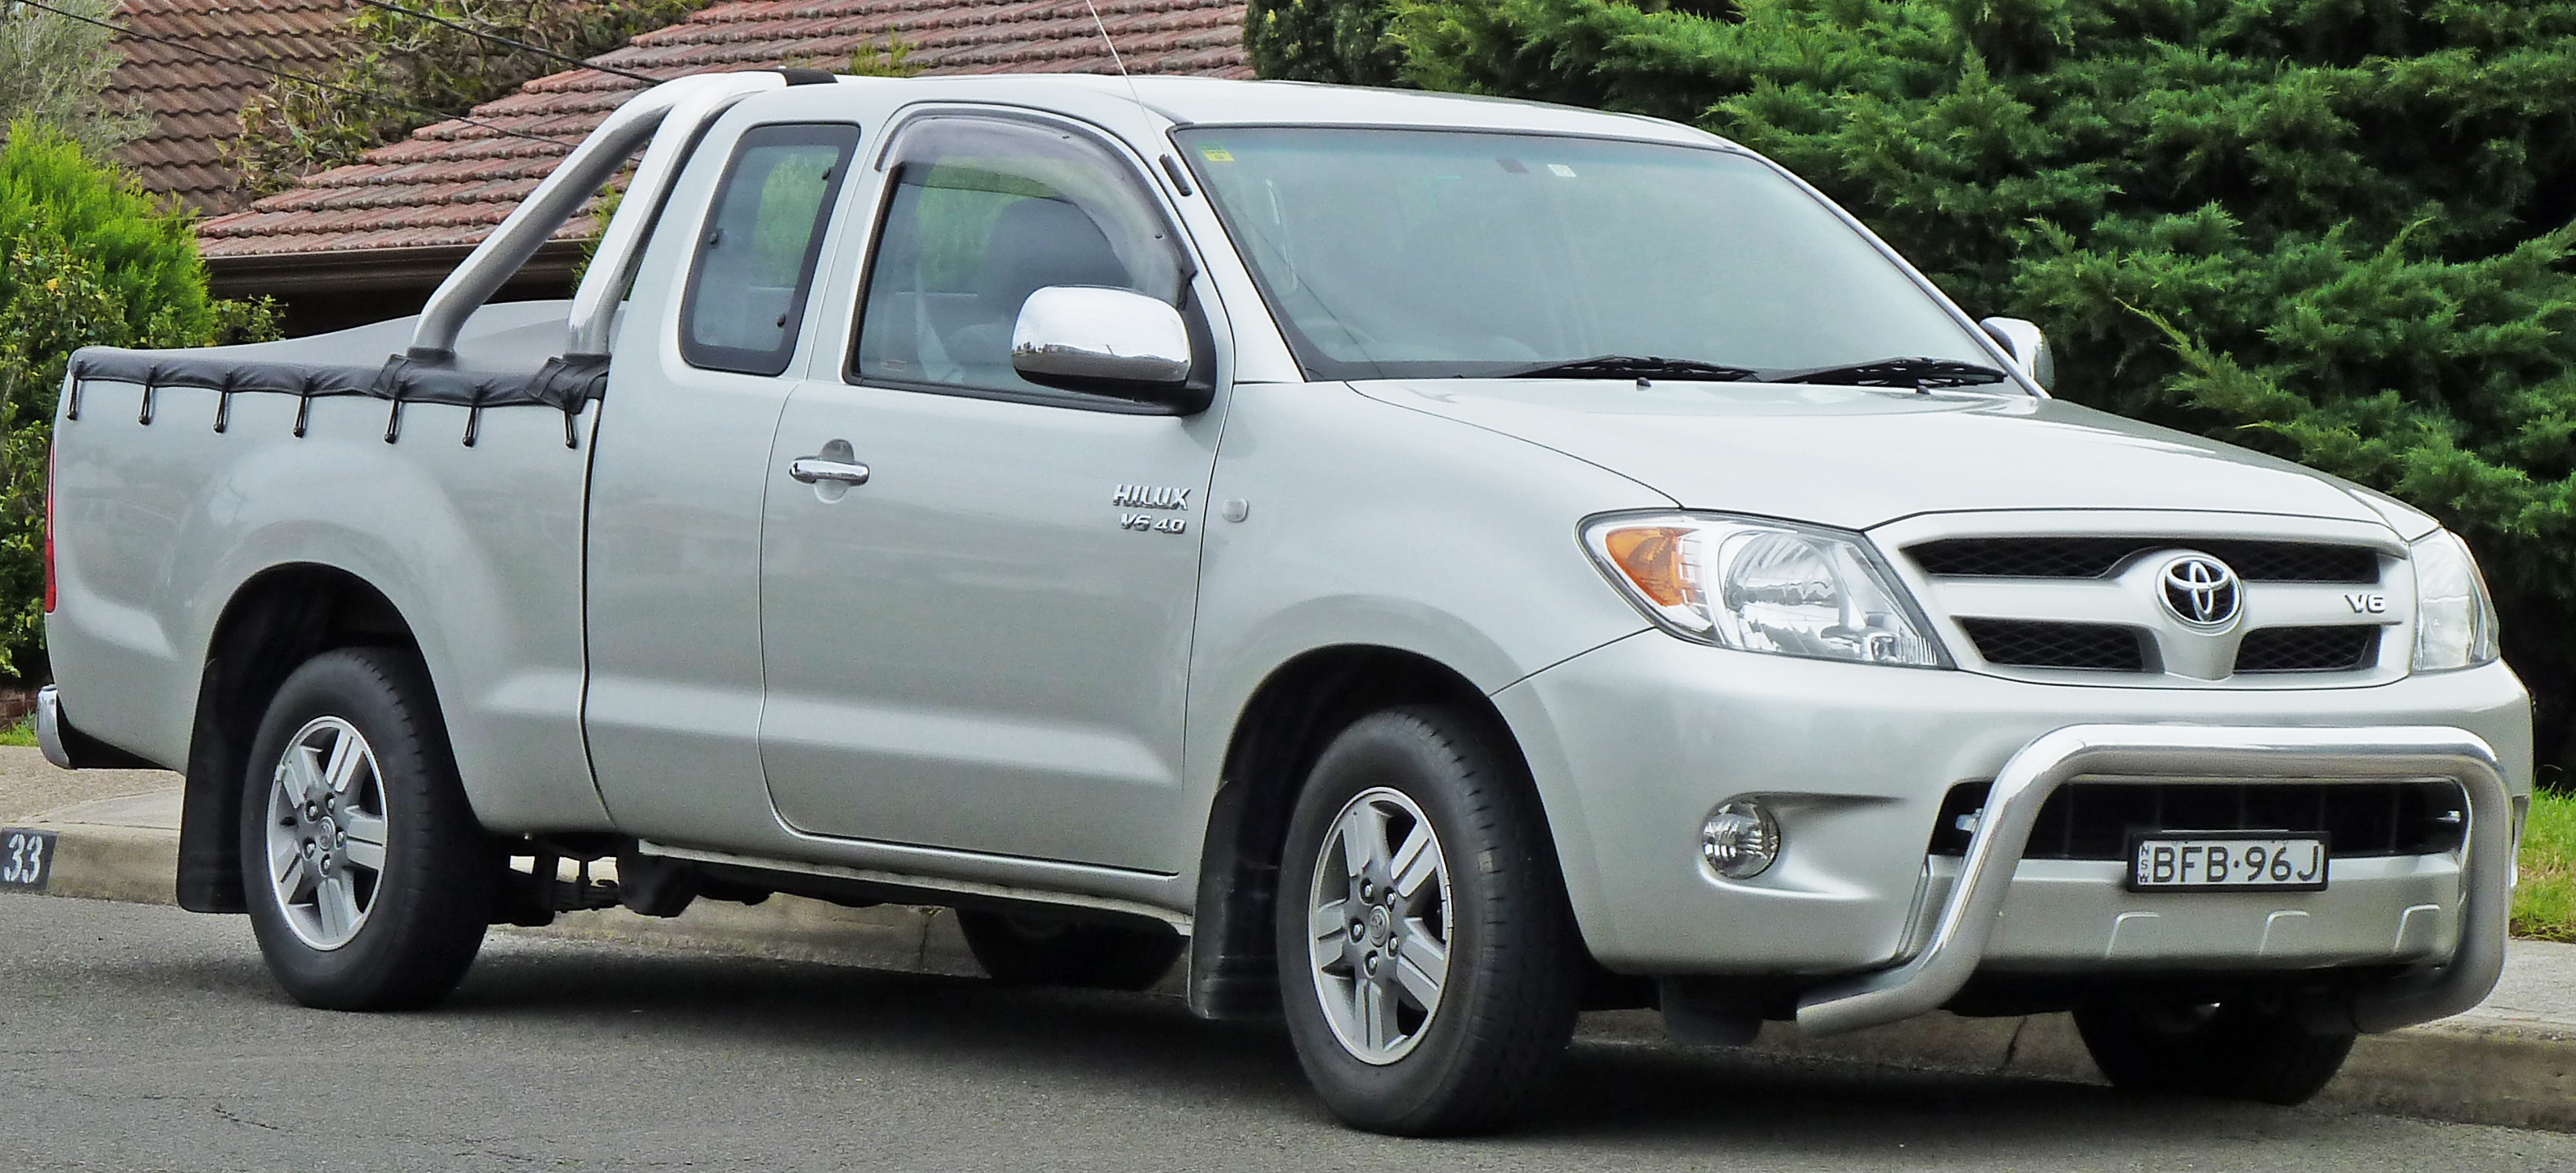 file:2005-2008 toyota hilux (ggn15r) sr5 xtra cab 2-door utility